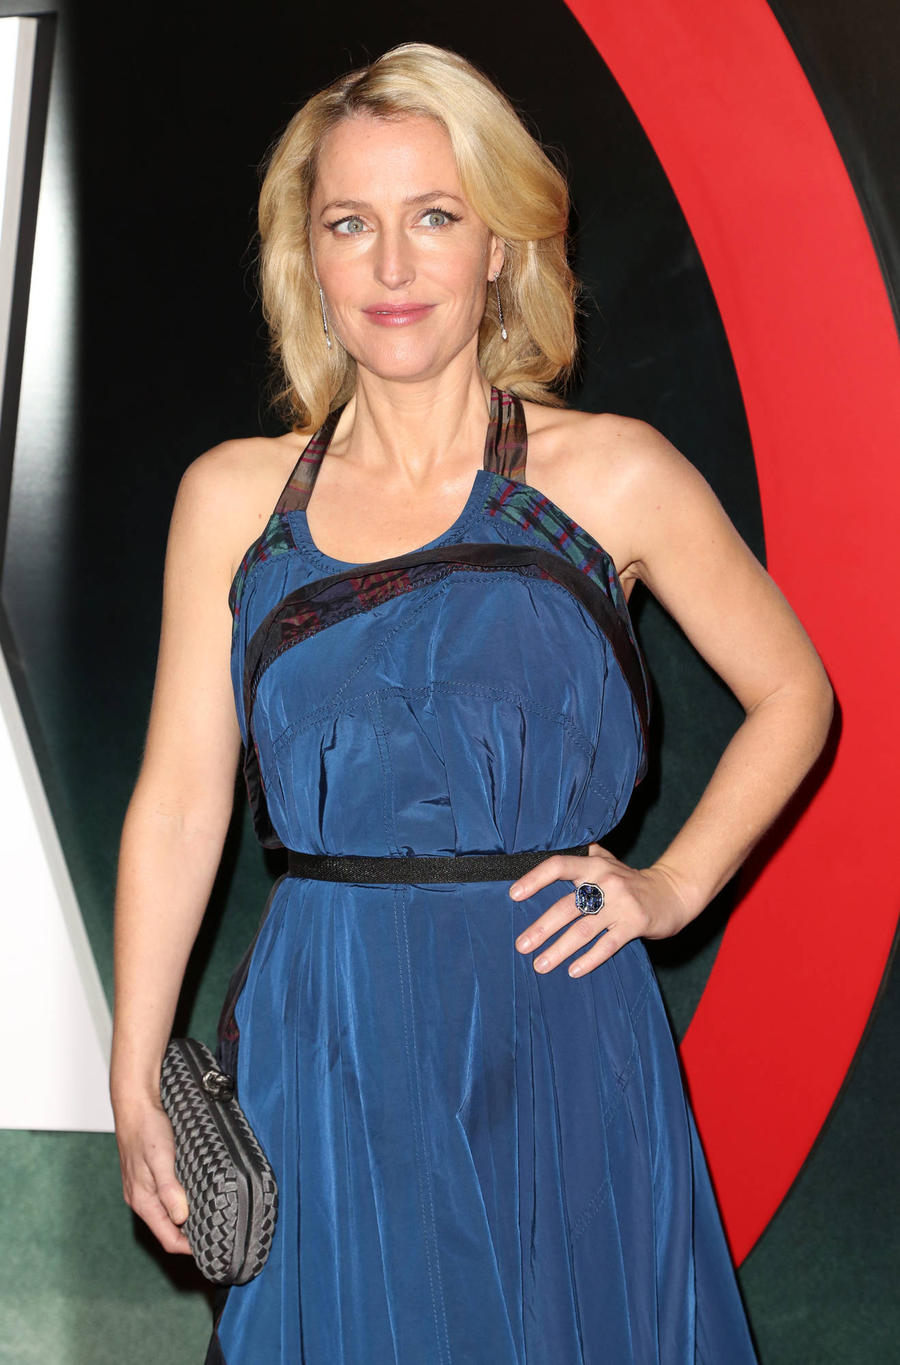 Gillian Anderson: 'British Women Don't Worry About The Ageing Process As Much As Americans'